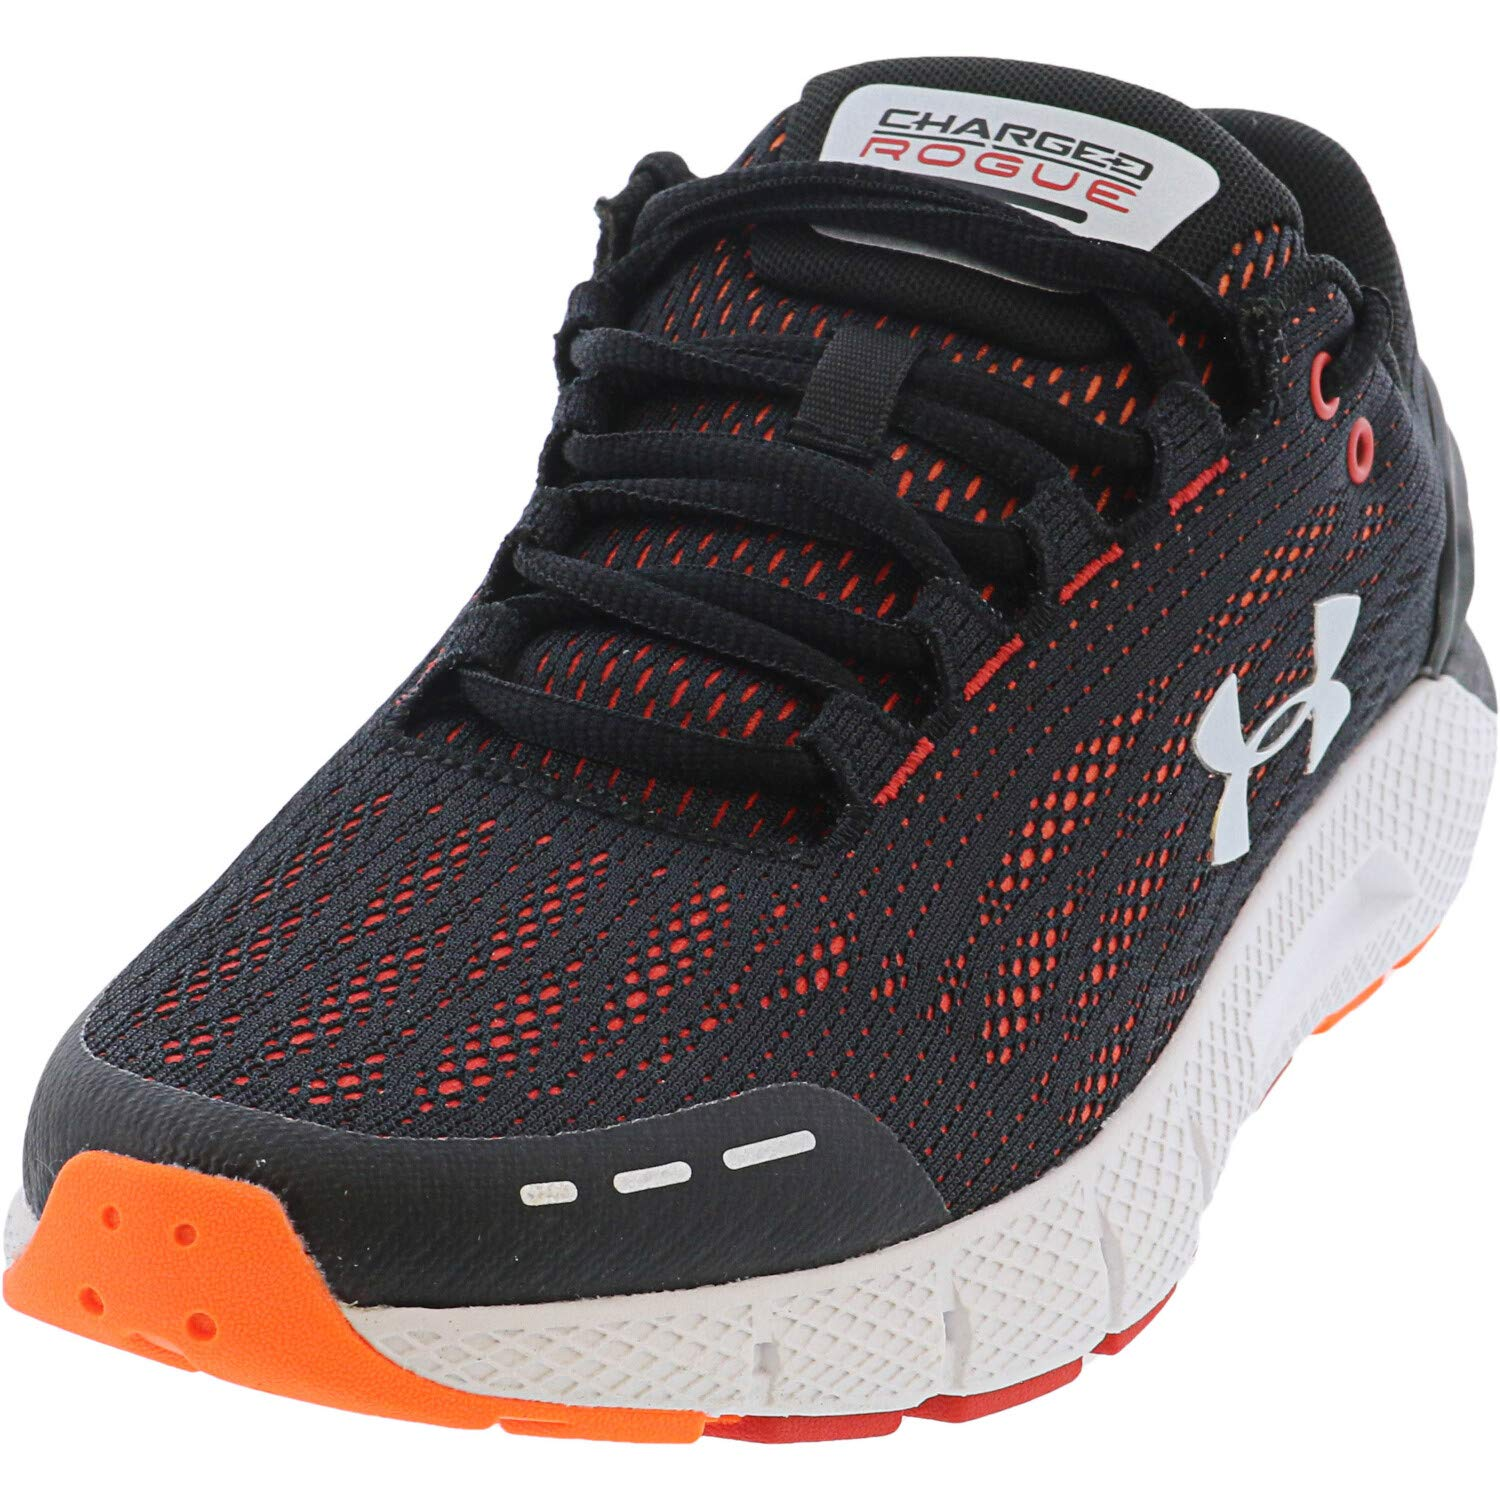 Best Under Armour Shoes Suggestion by grabitonce.in